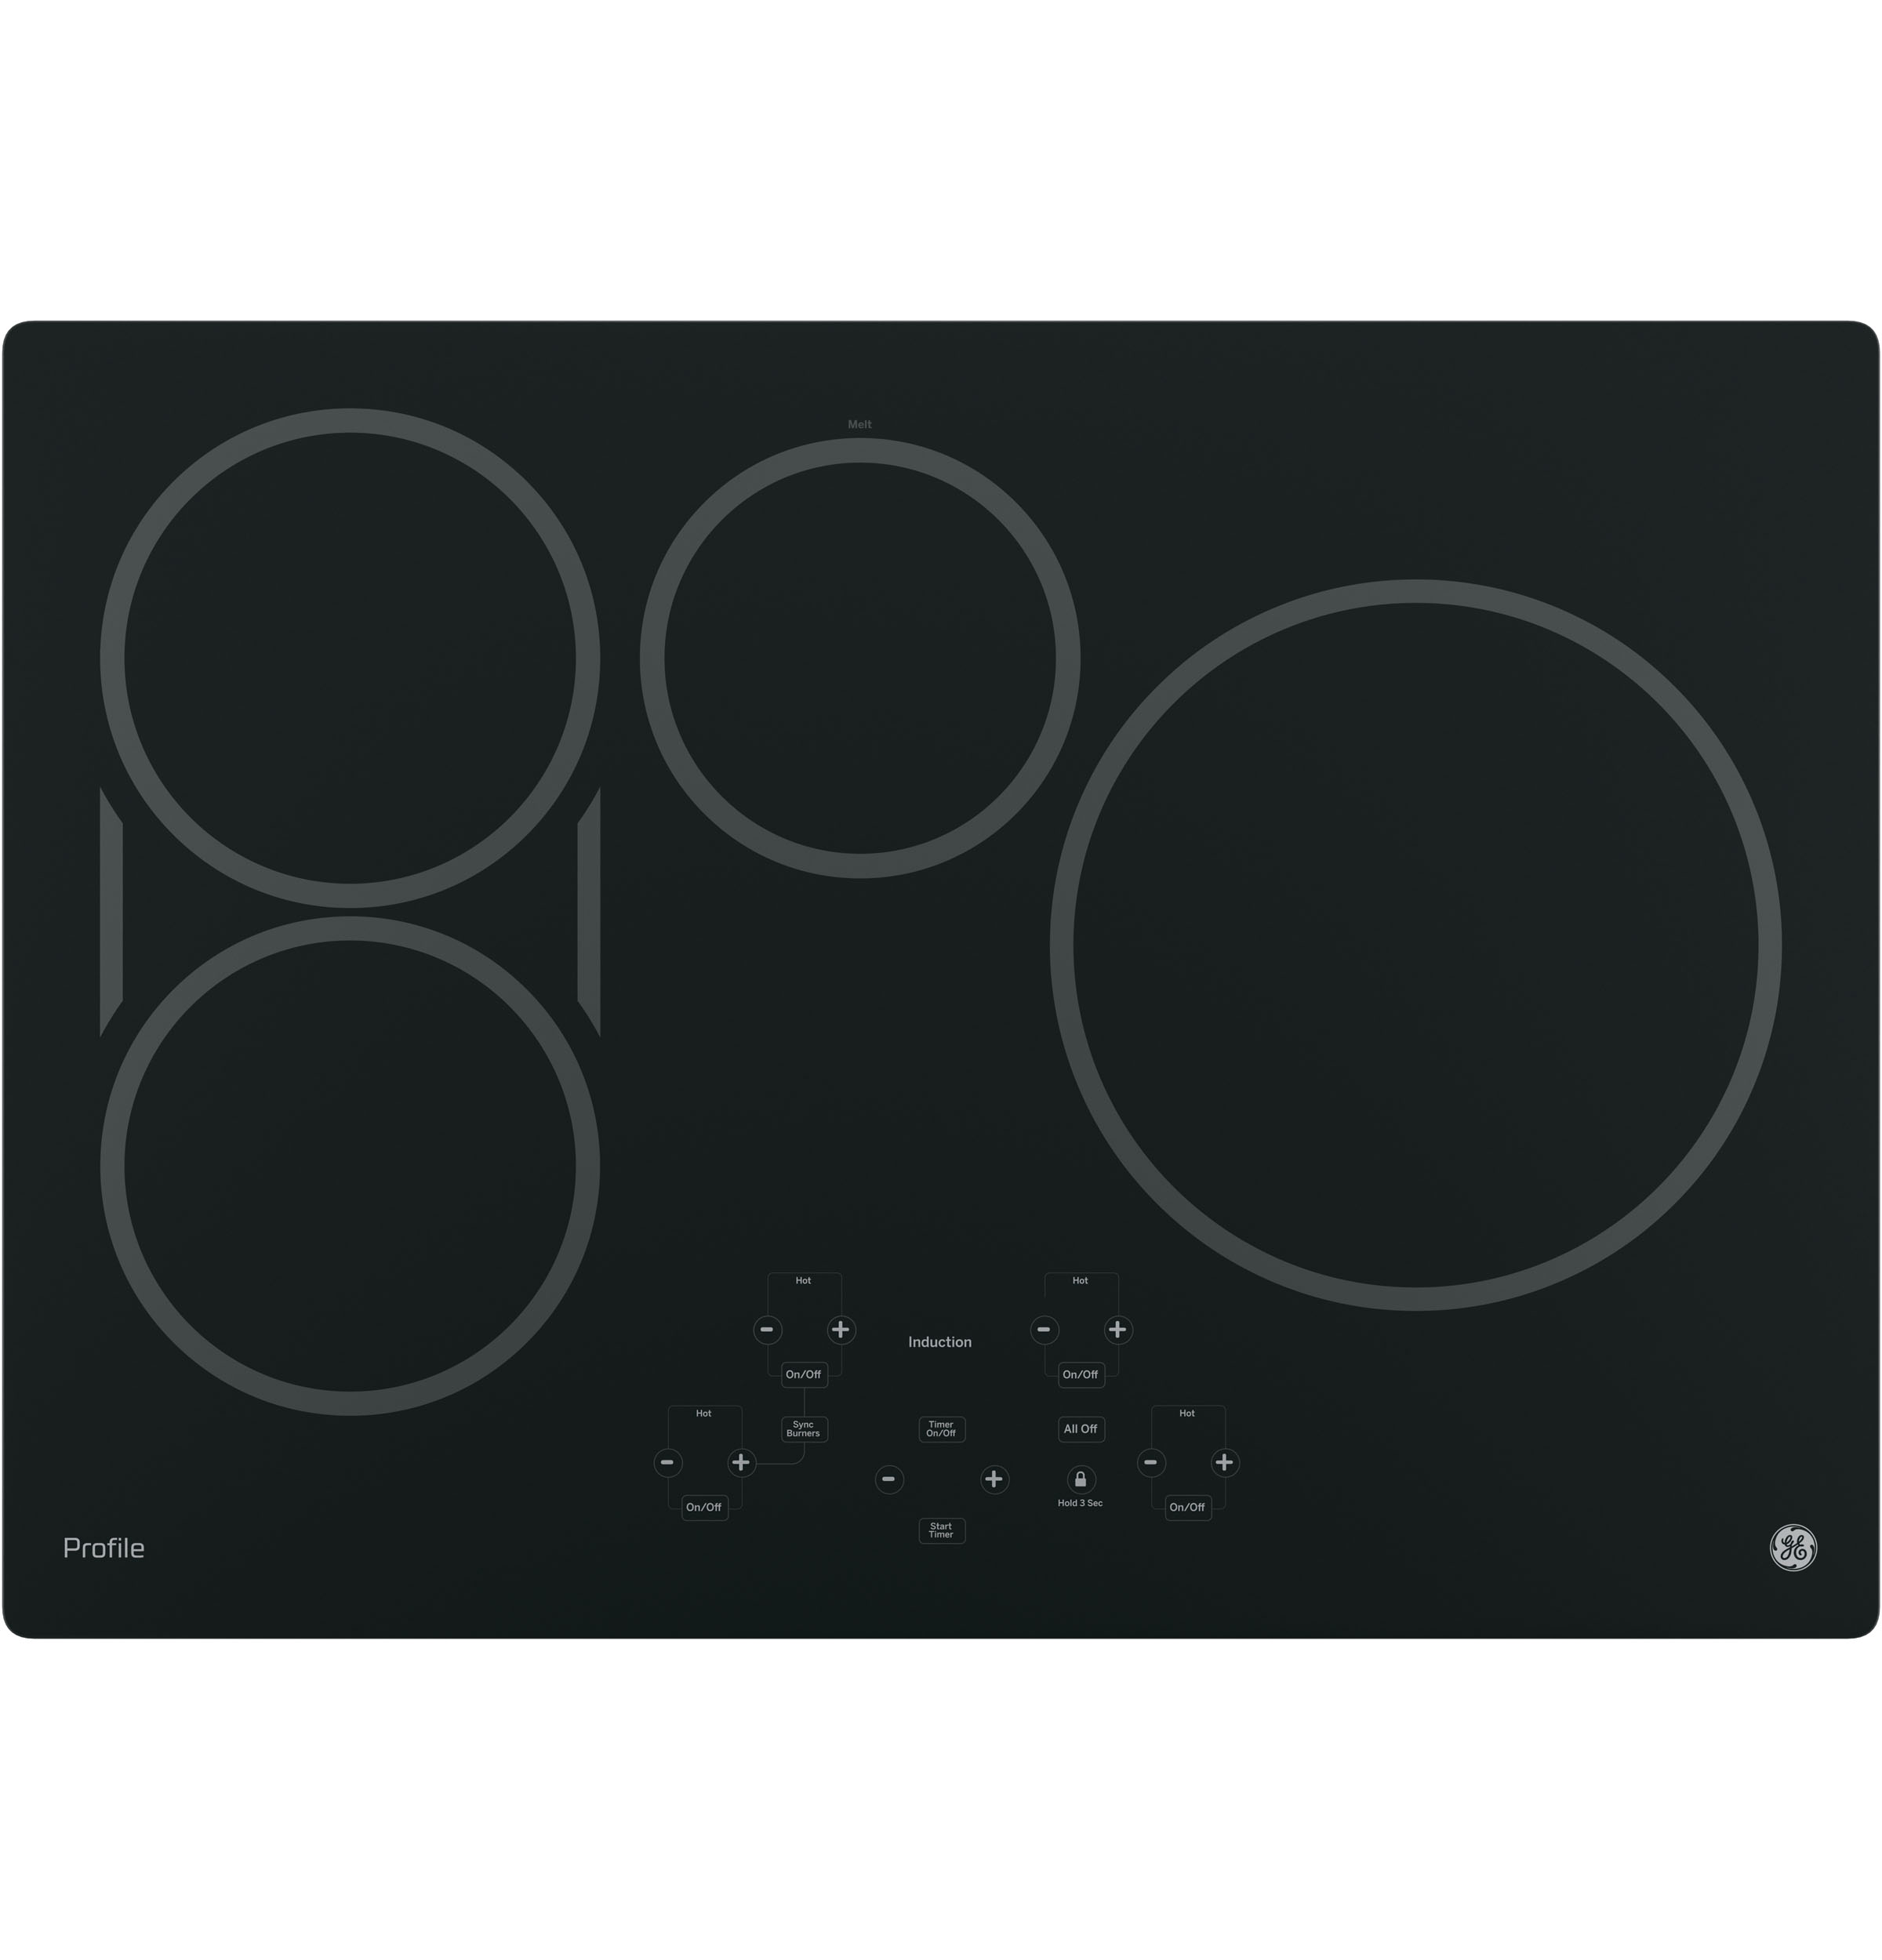 "GE Profile GE Profile™ Series 30"" Built-In Touch Control Induction Cooktop"